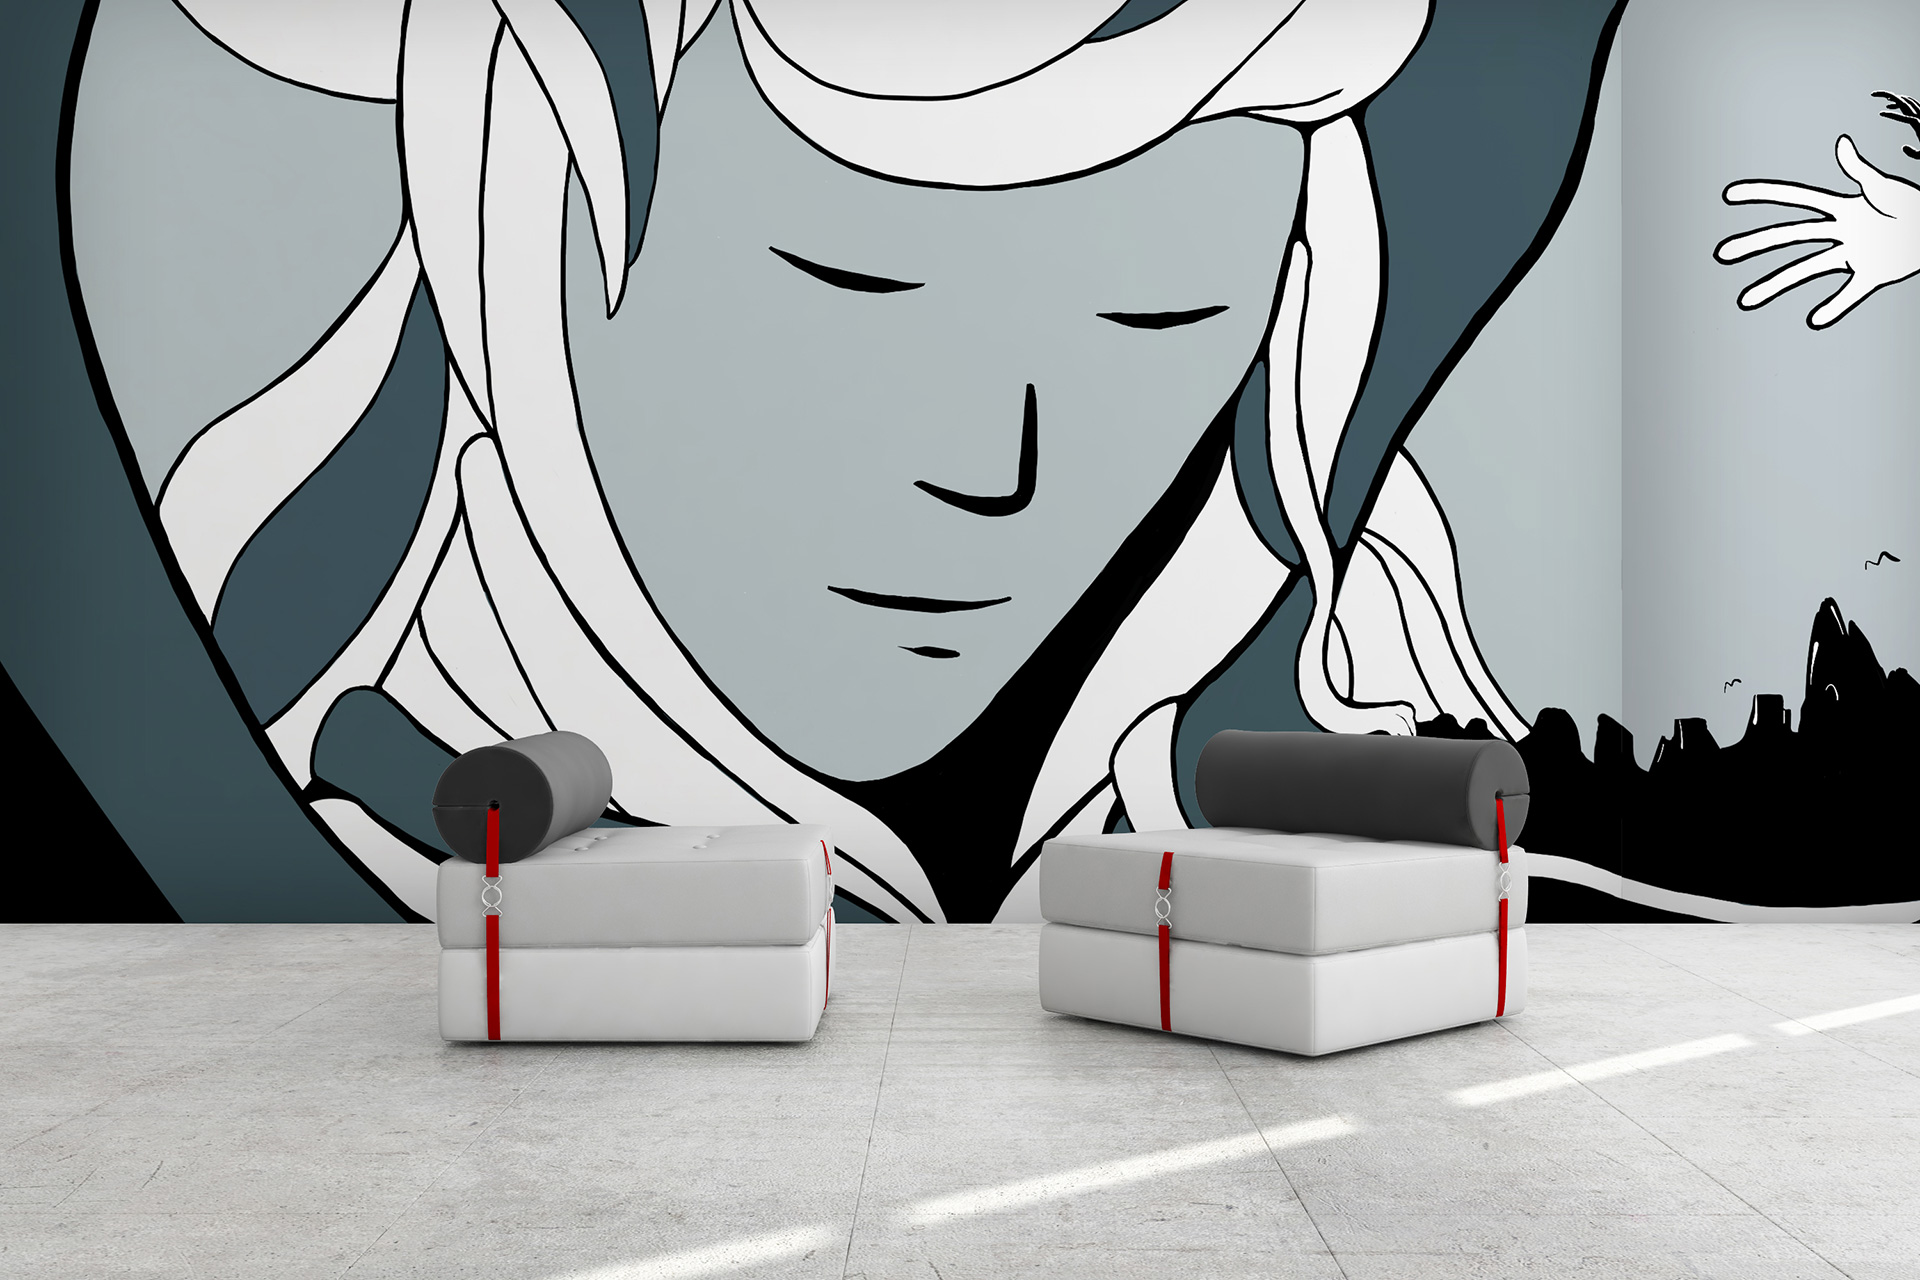 Grapevine Wall murals and large format